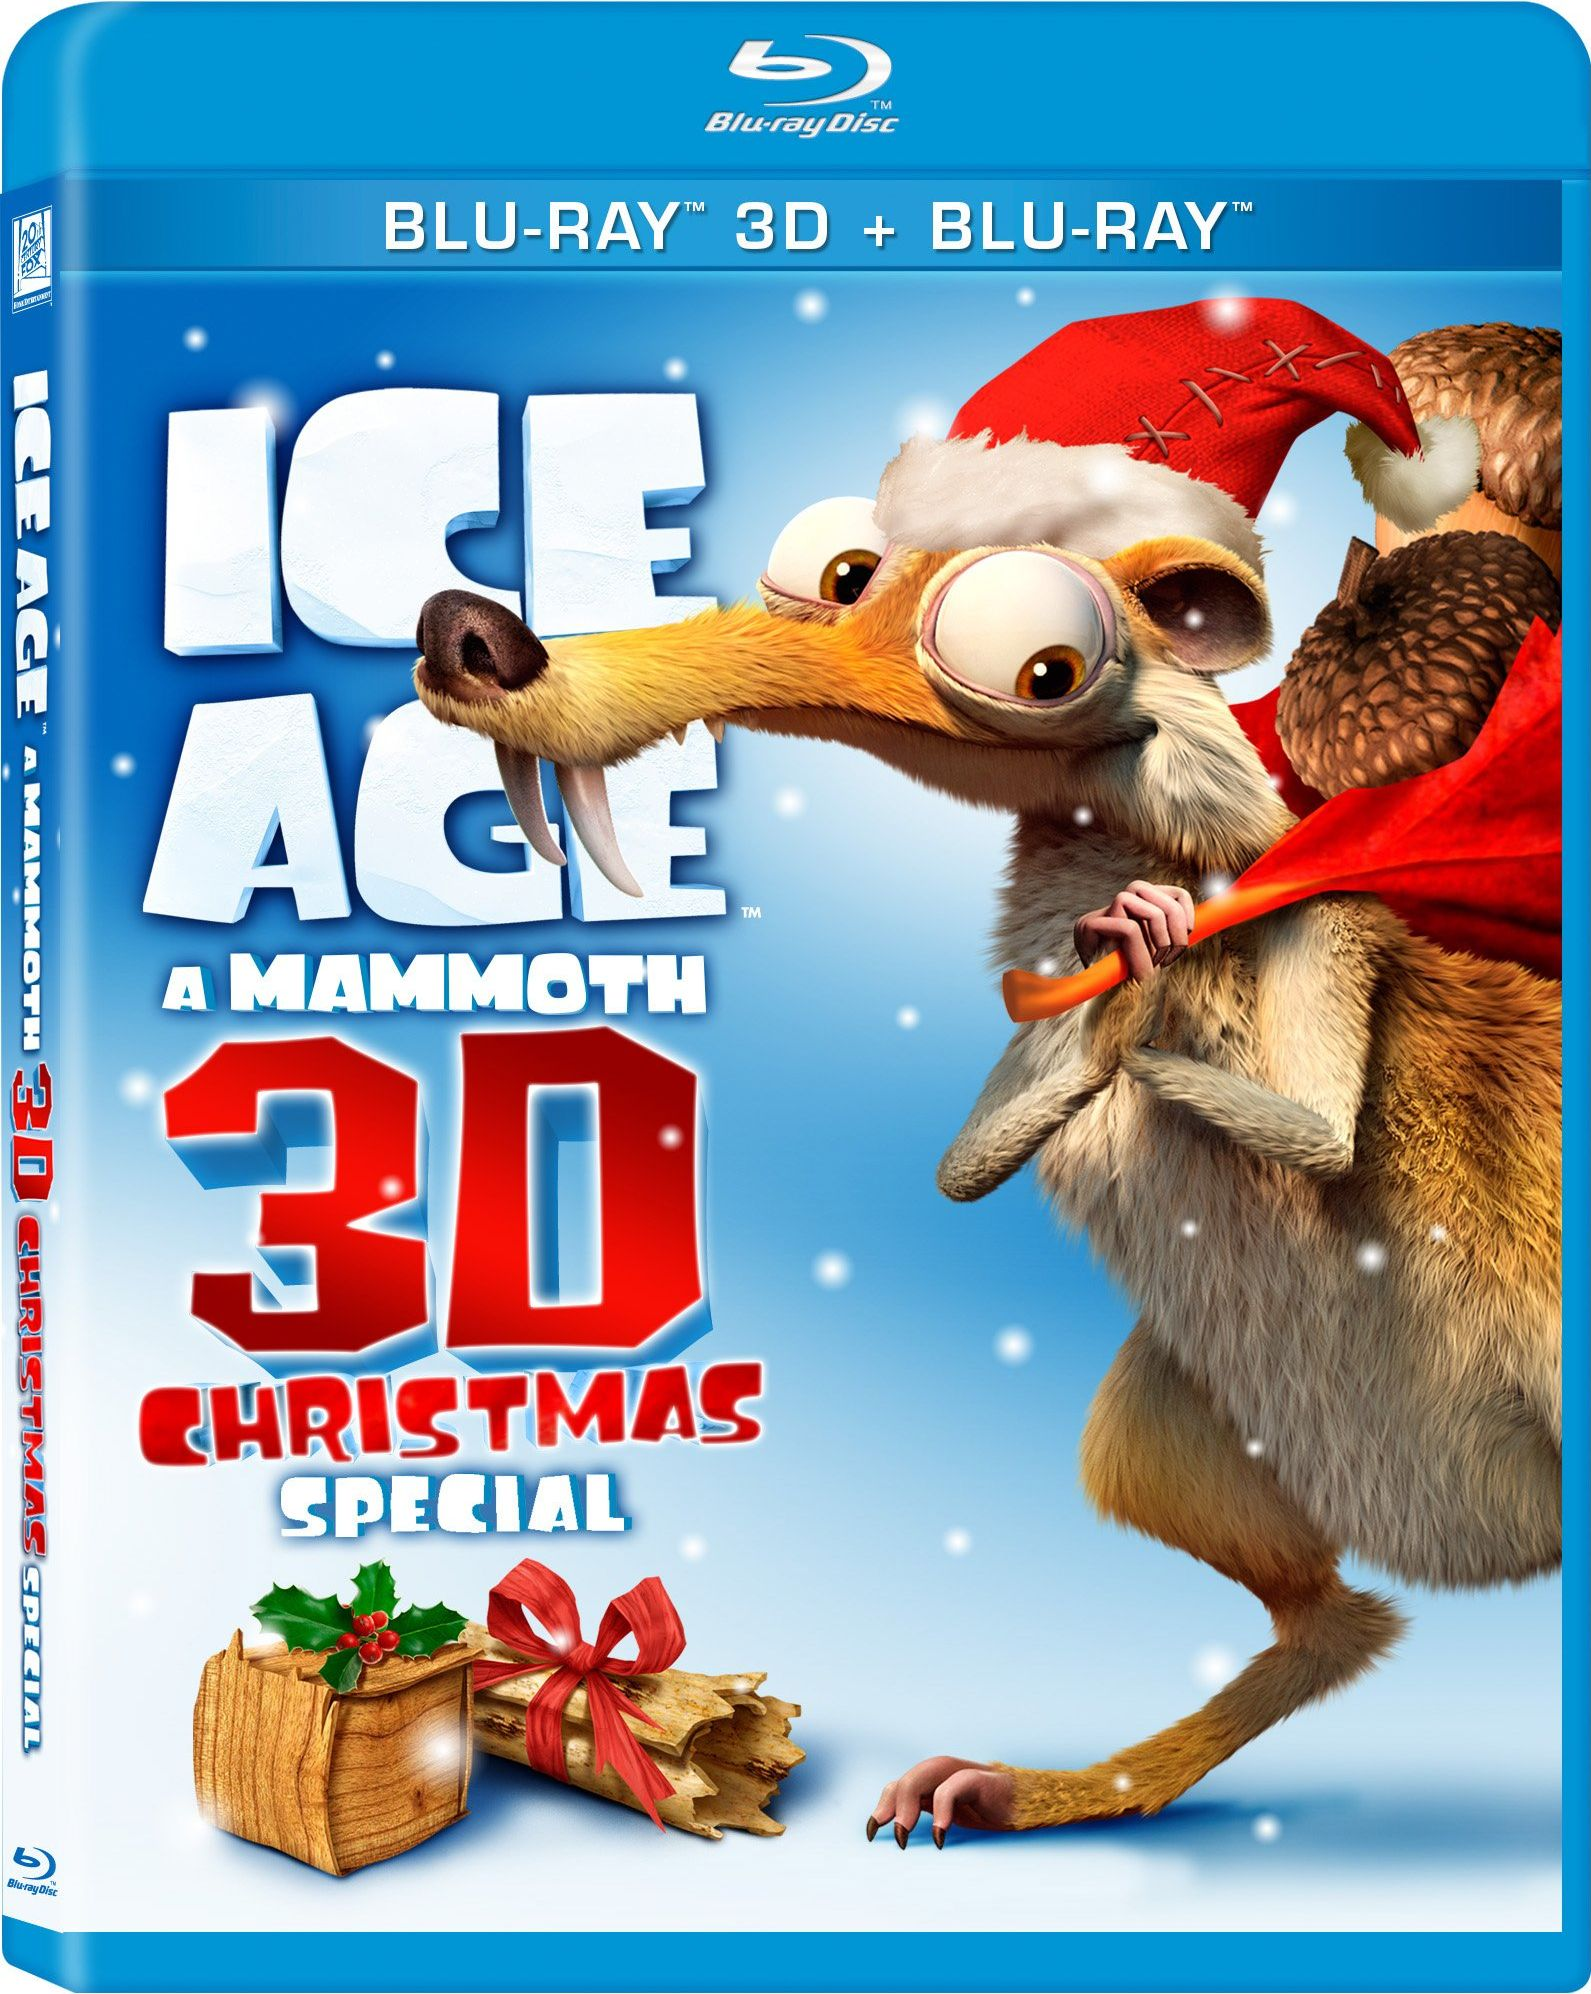 Ice Age: A Mammoth Christmas Backgrounds, Compatible - PC, Mobile, Gadgets| 1591x1994 px